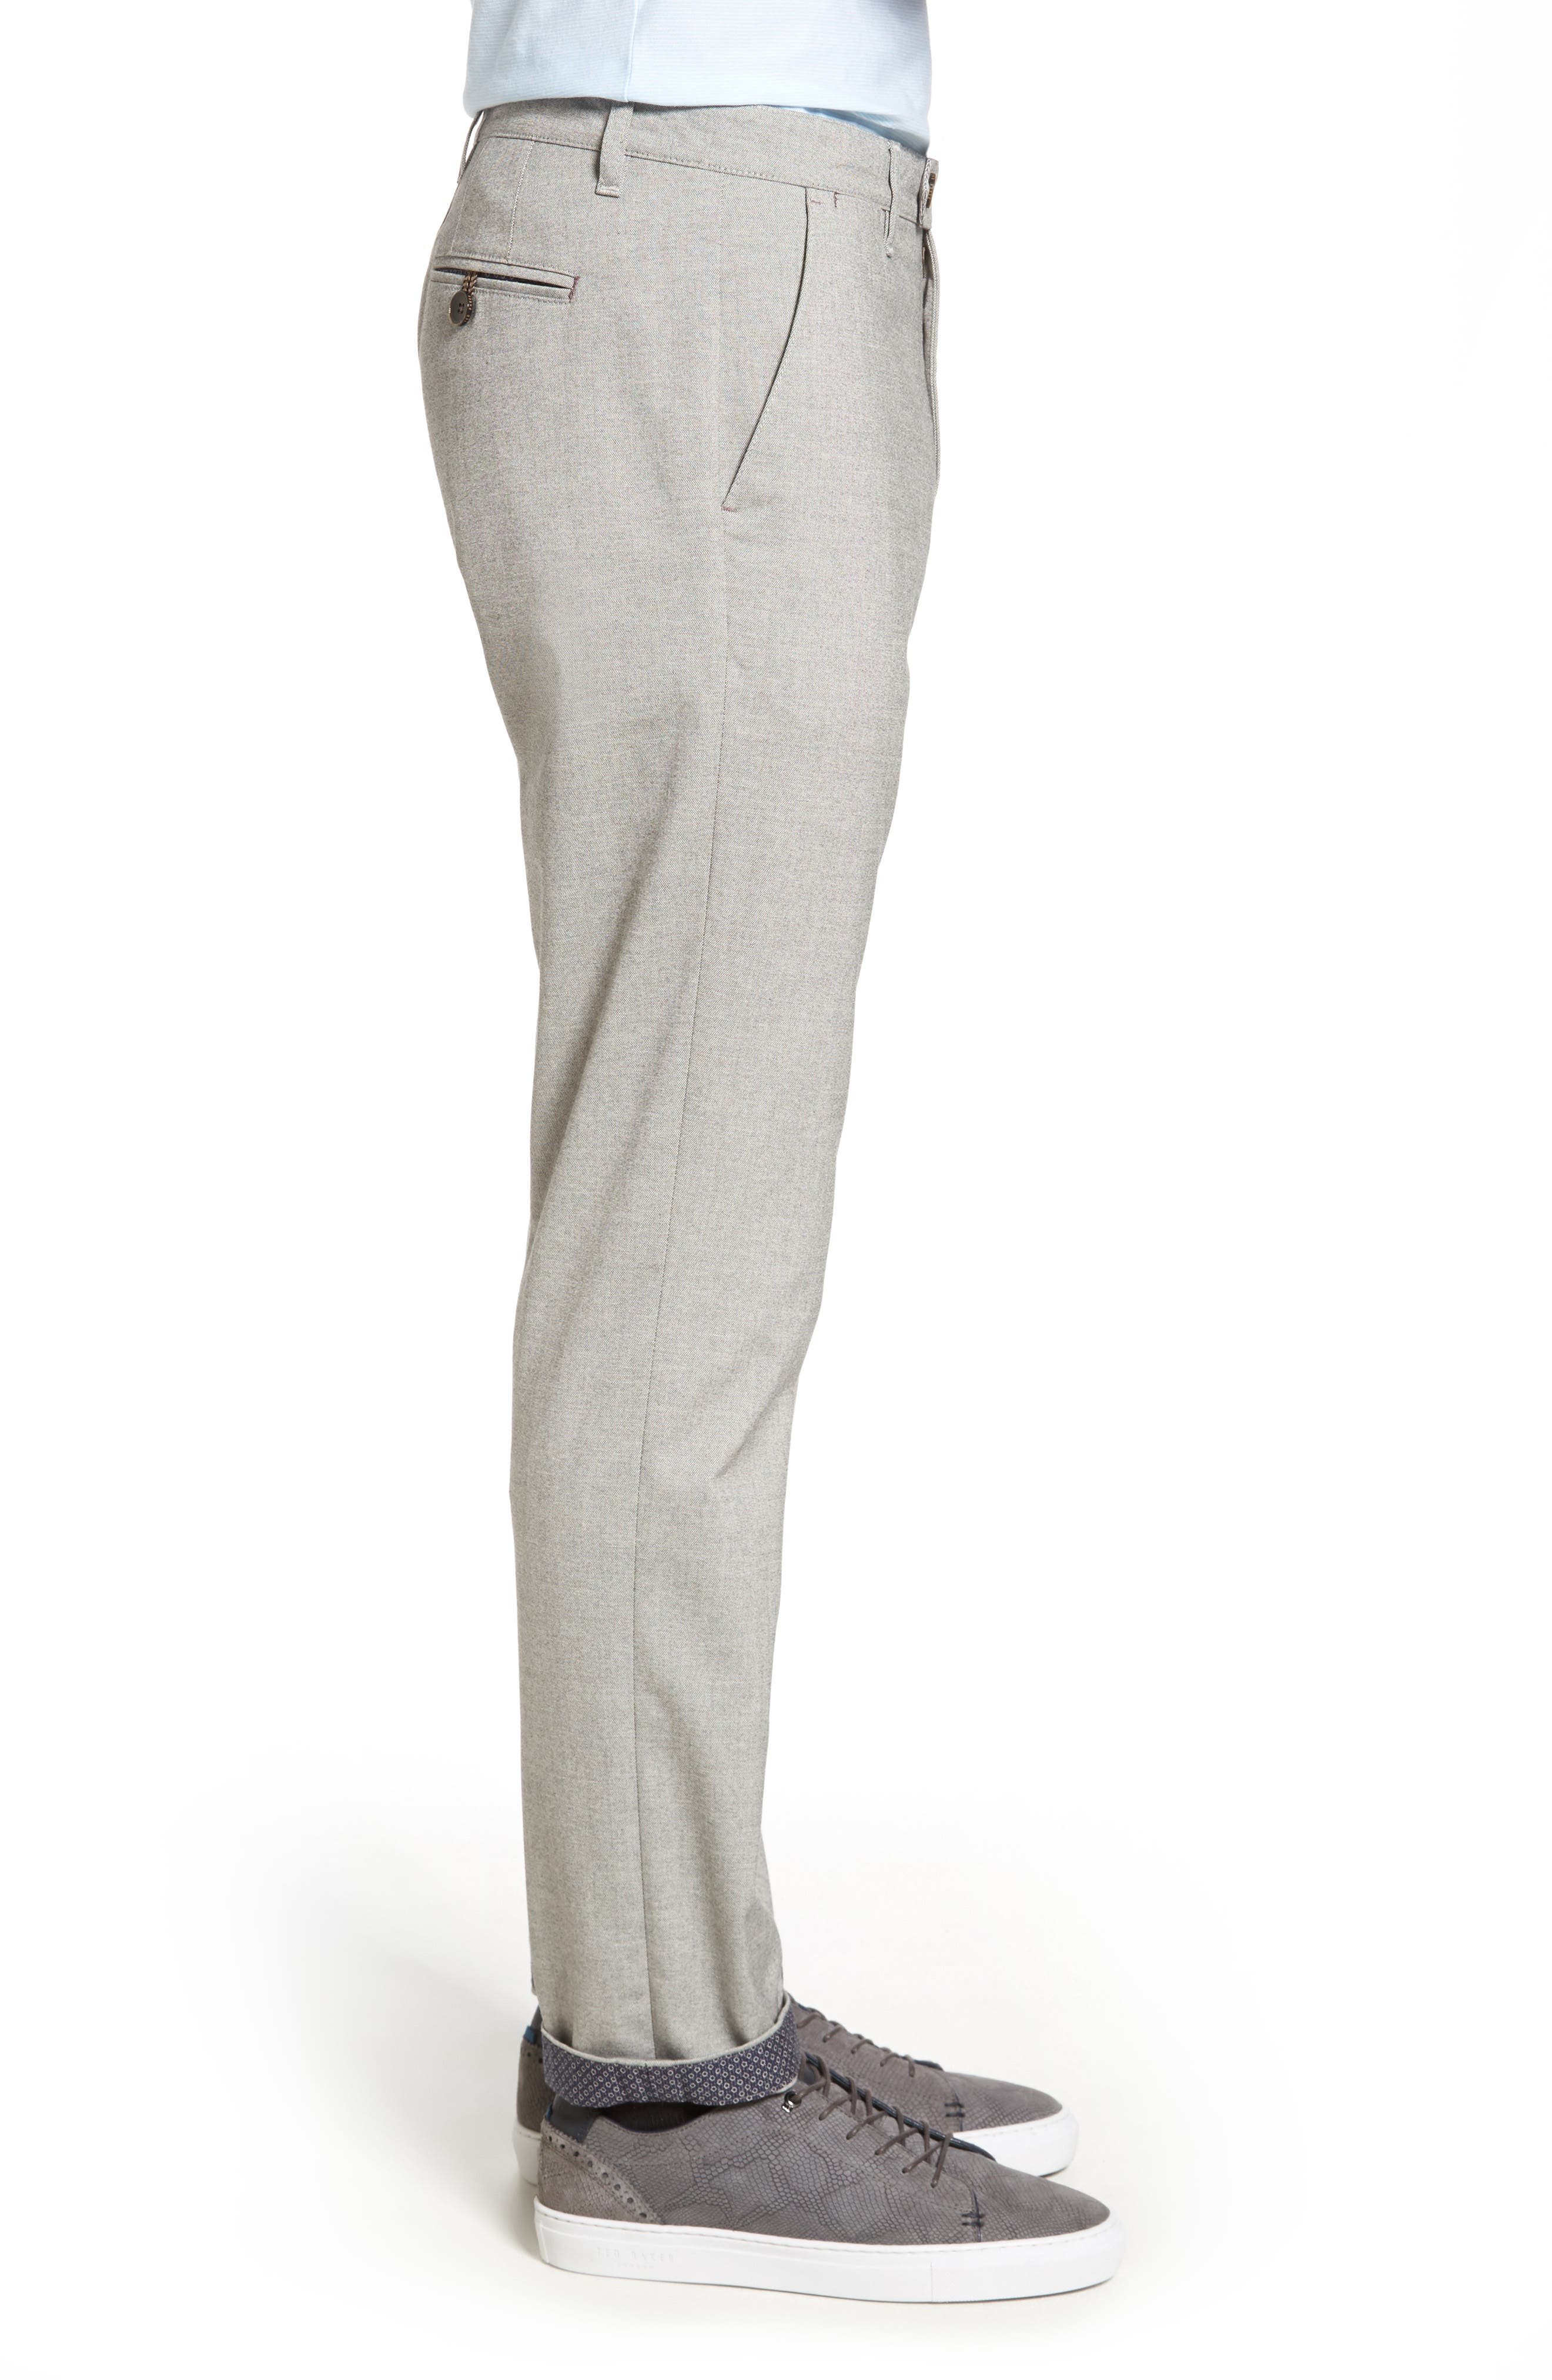 TED BAKER LONDON,                             Volvek Classic Fit Trousers,                             Alternate thumbnail 3, color,                             030